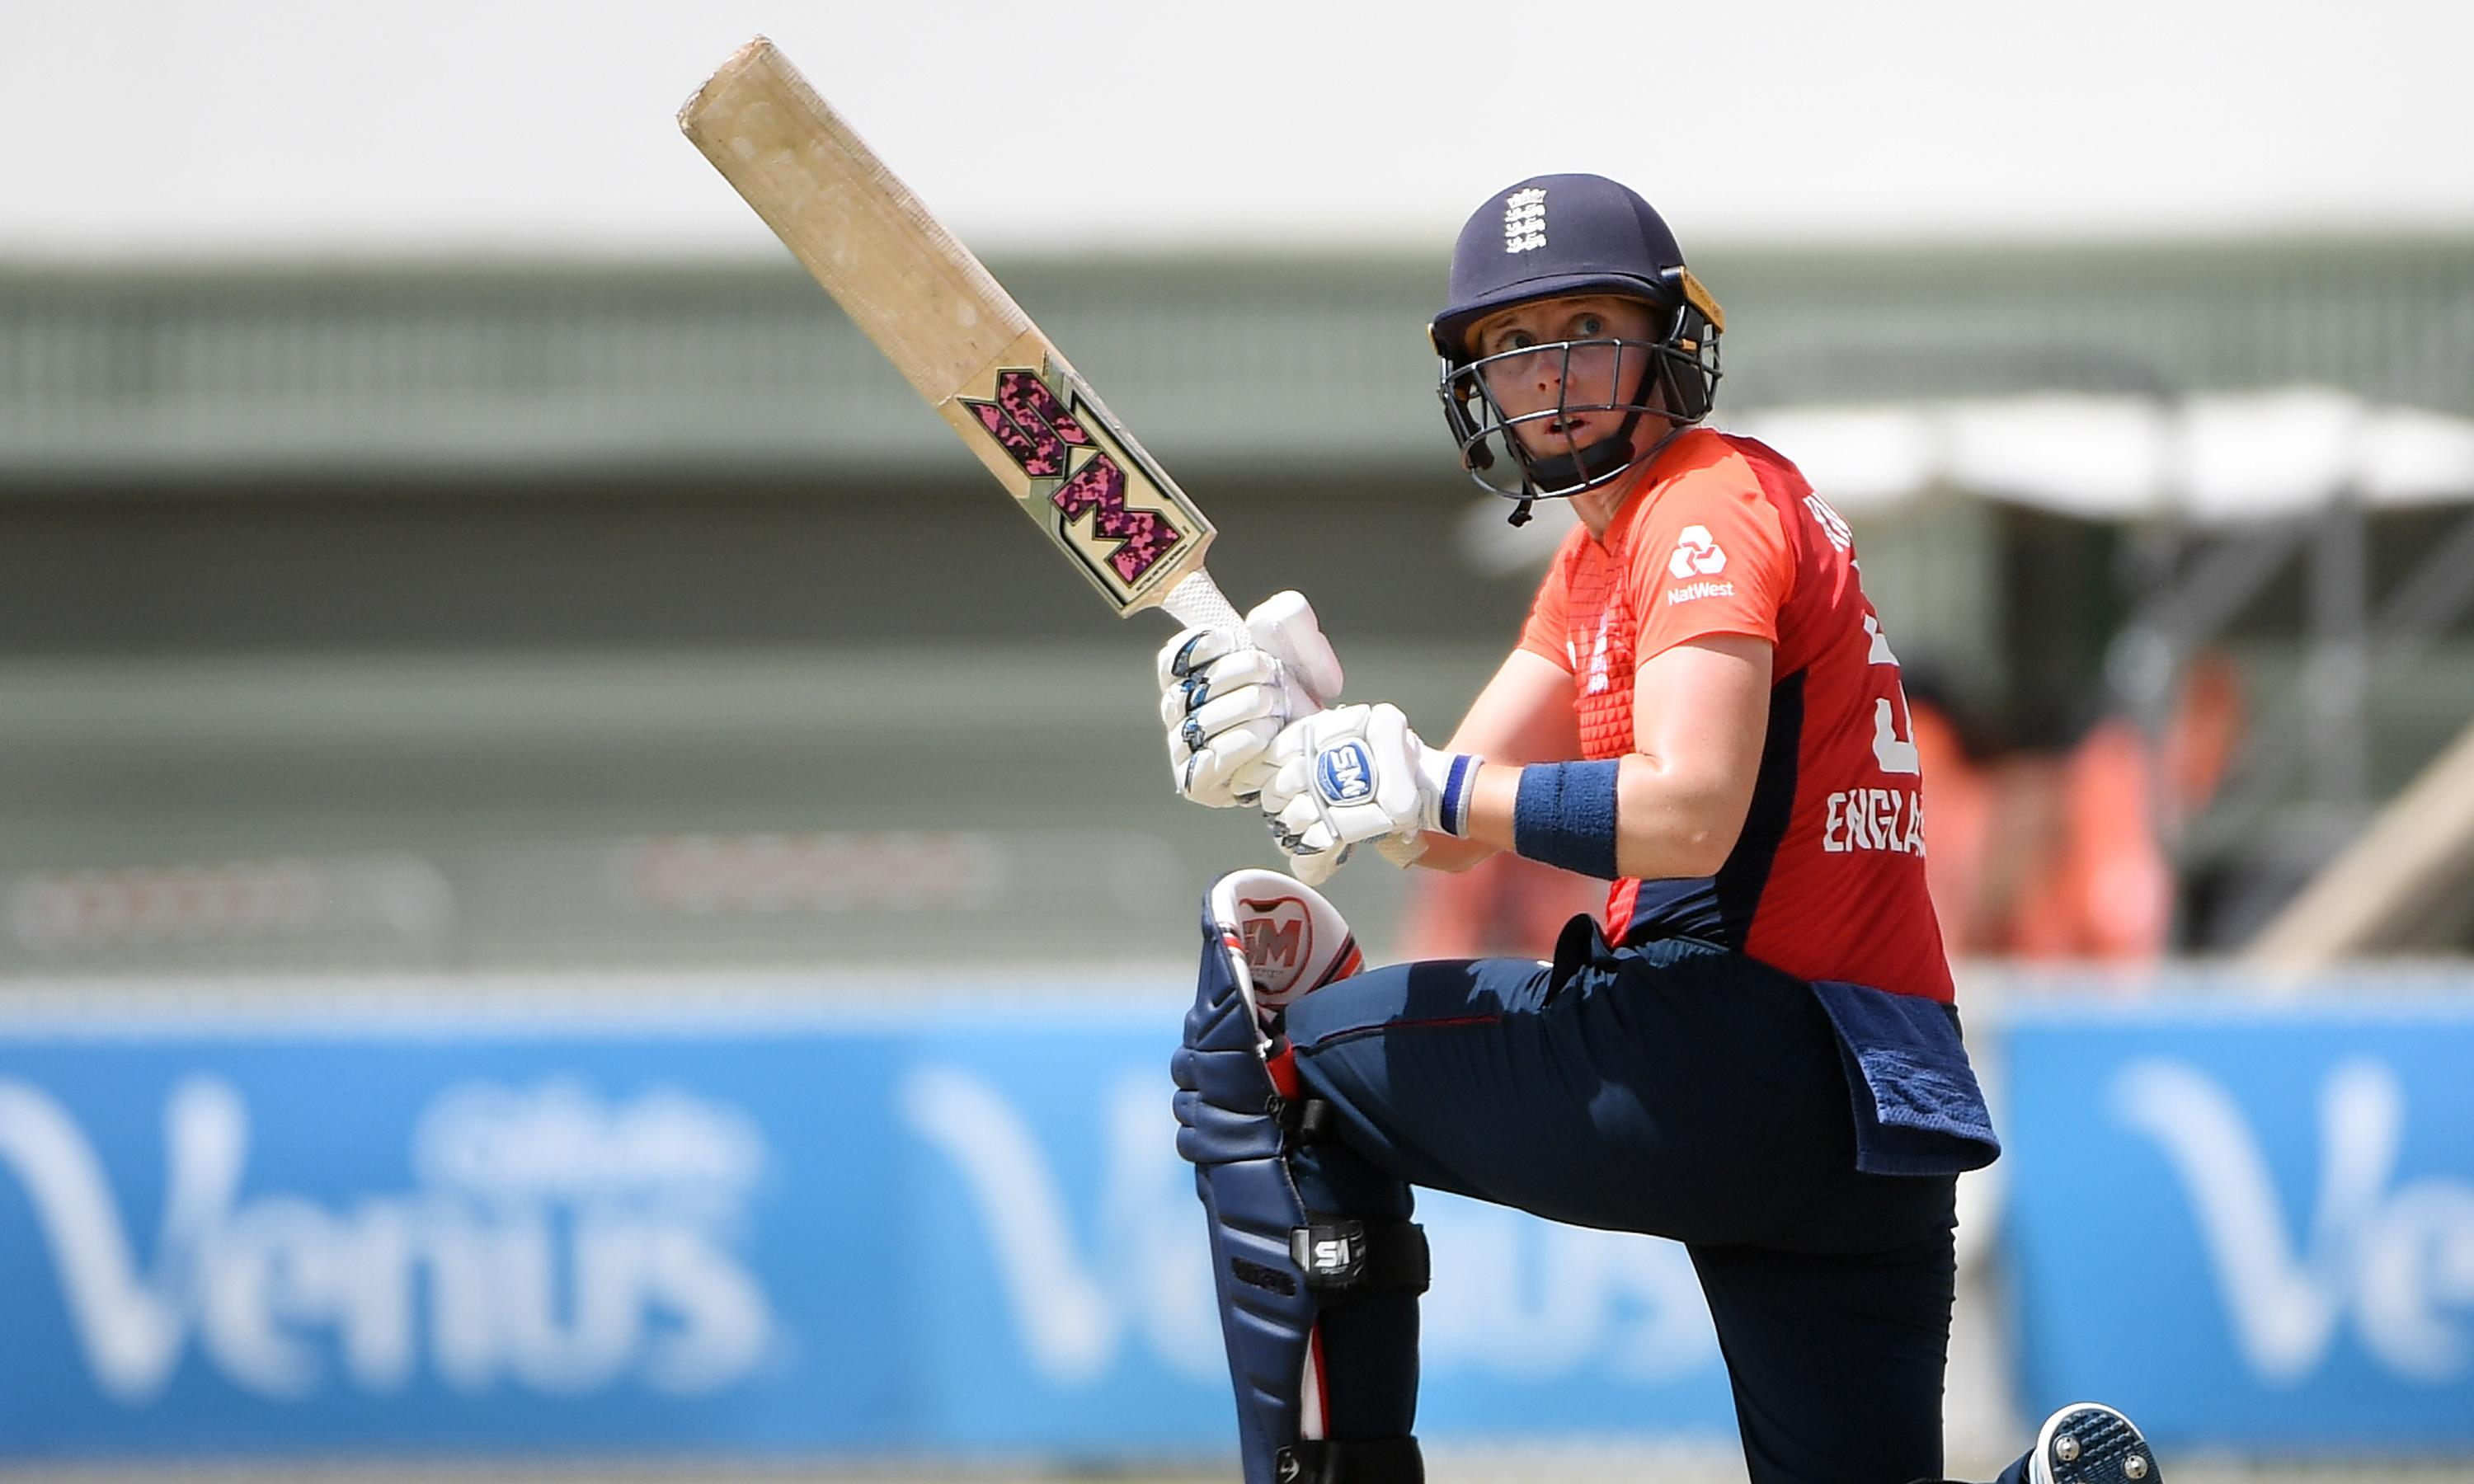 England swat aside New Zealand in Women's T20 World Cup warm-up